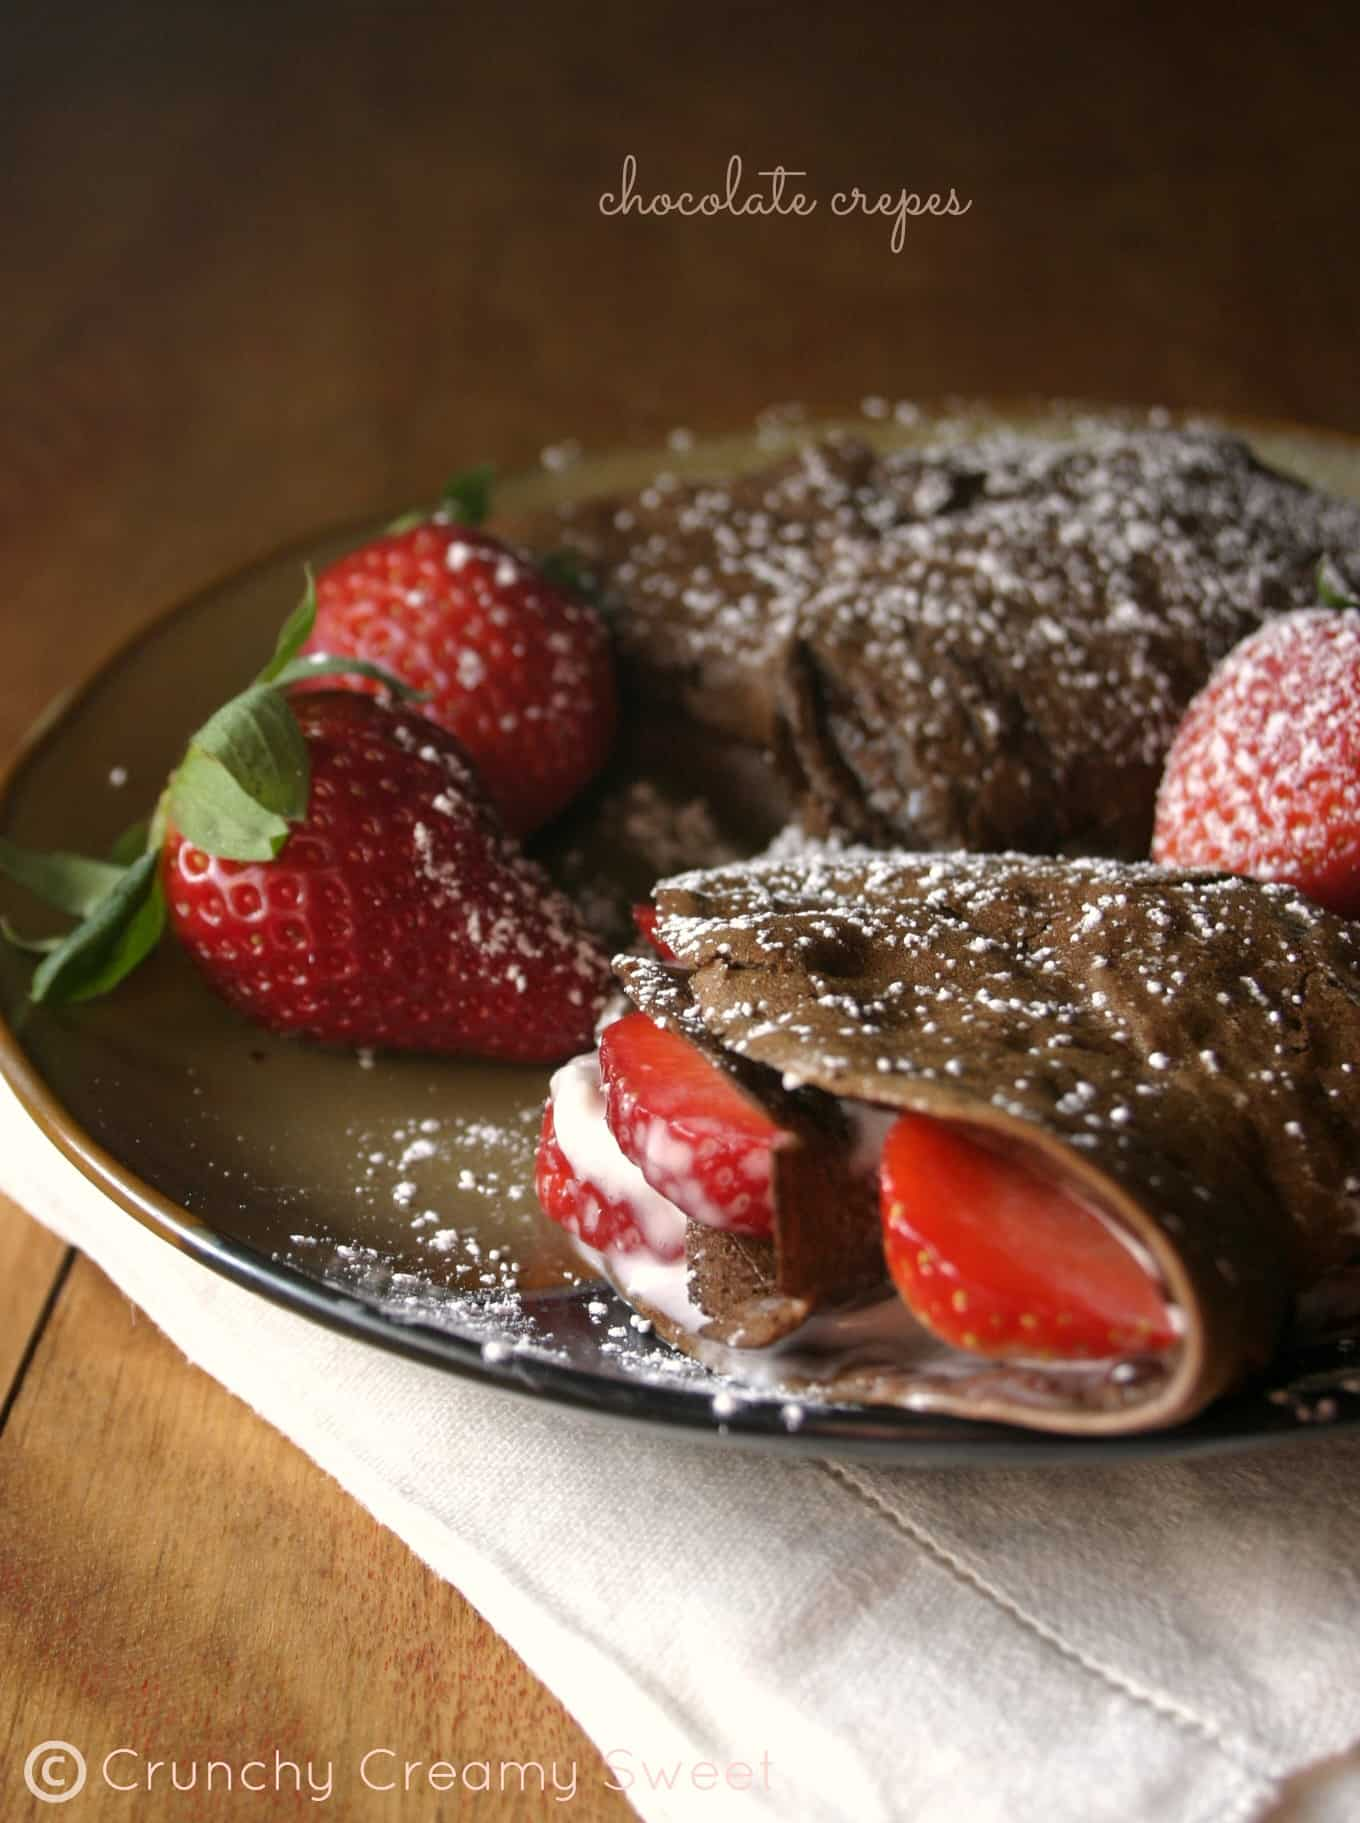 chocolate crepes 1 Chocolate Crepes with Strawberries and Cream Cheese